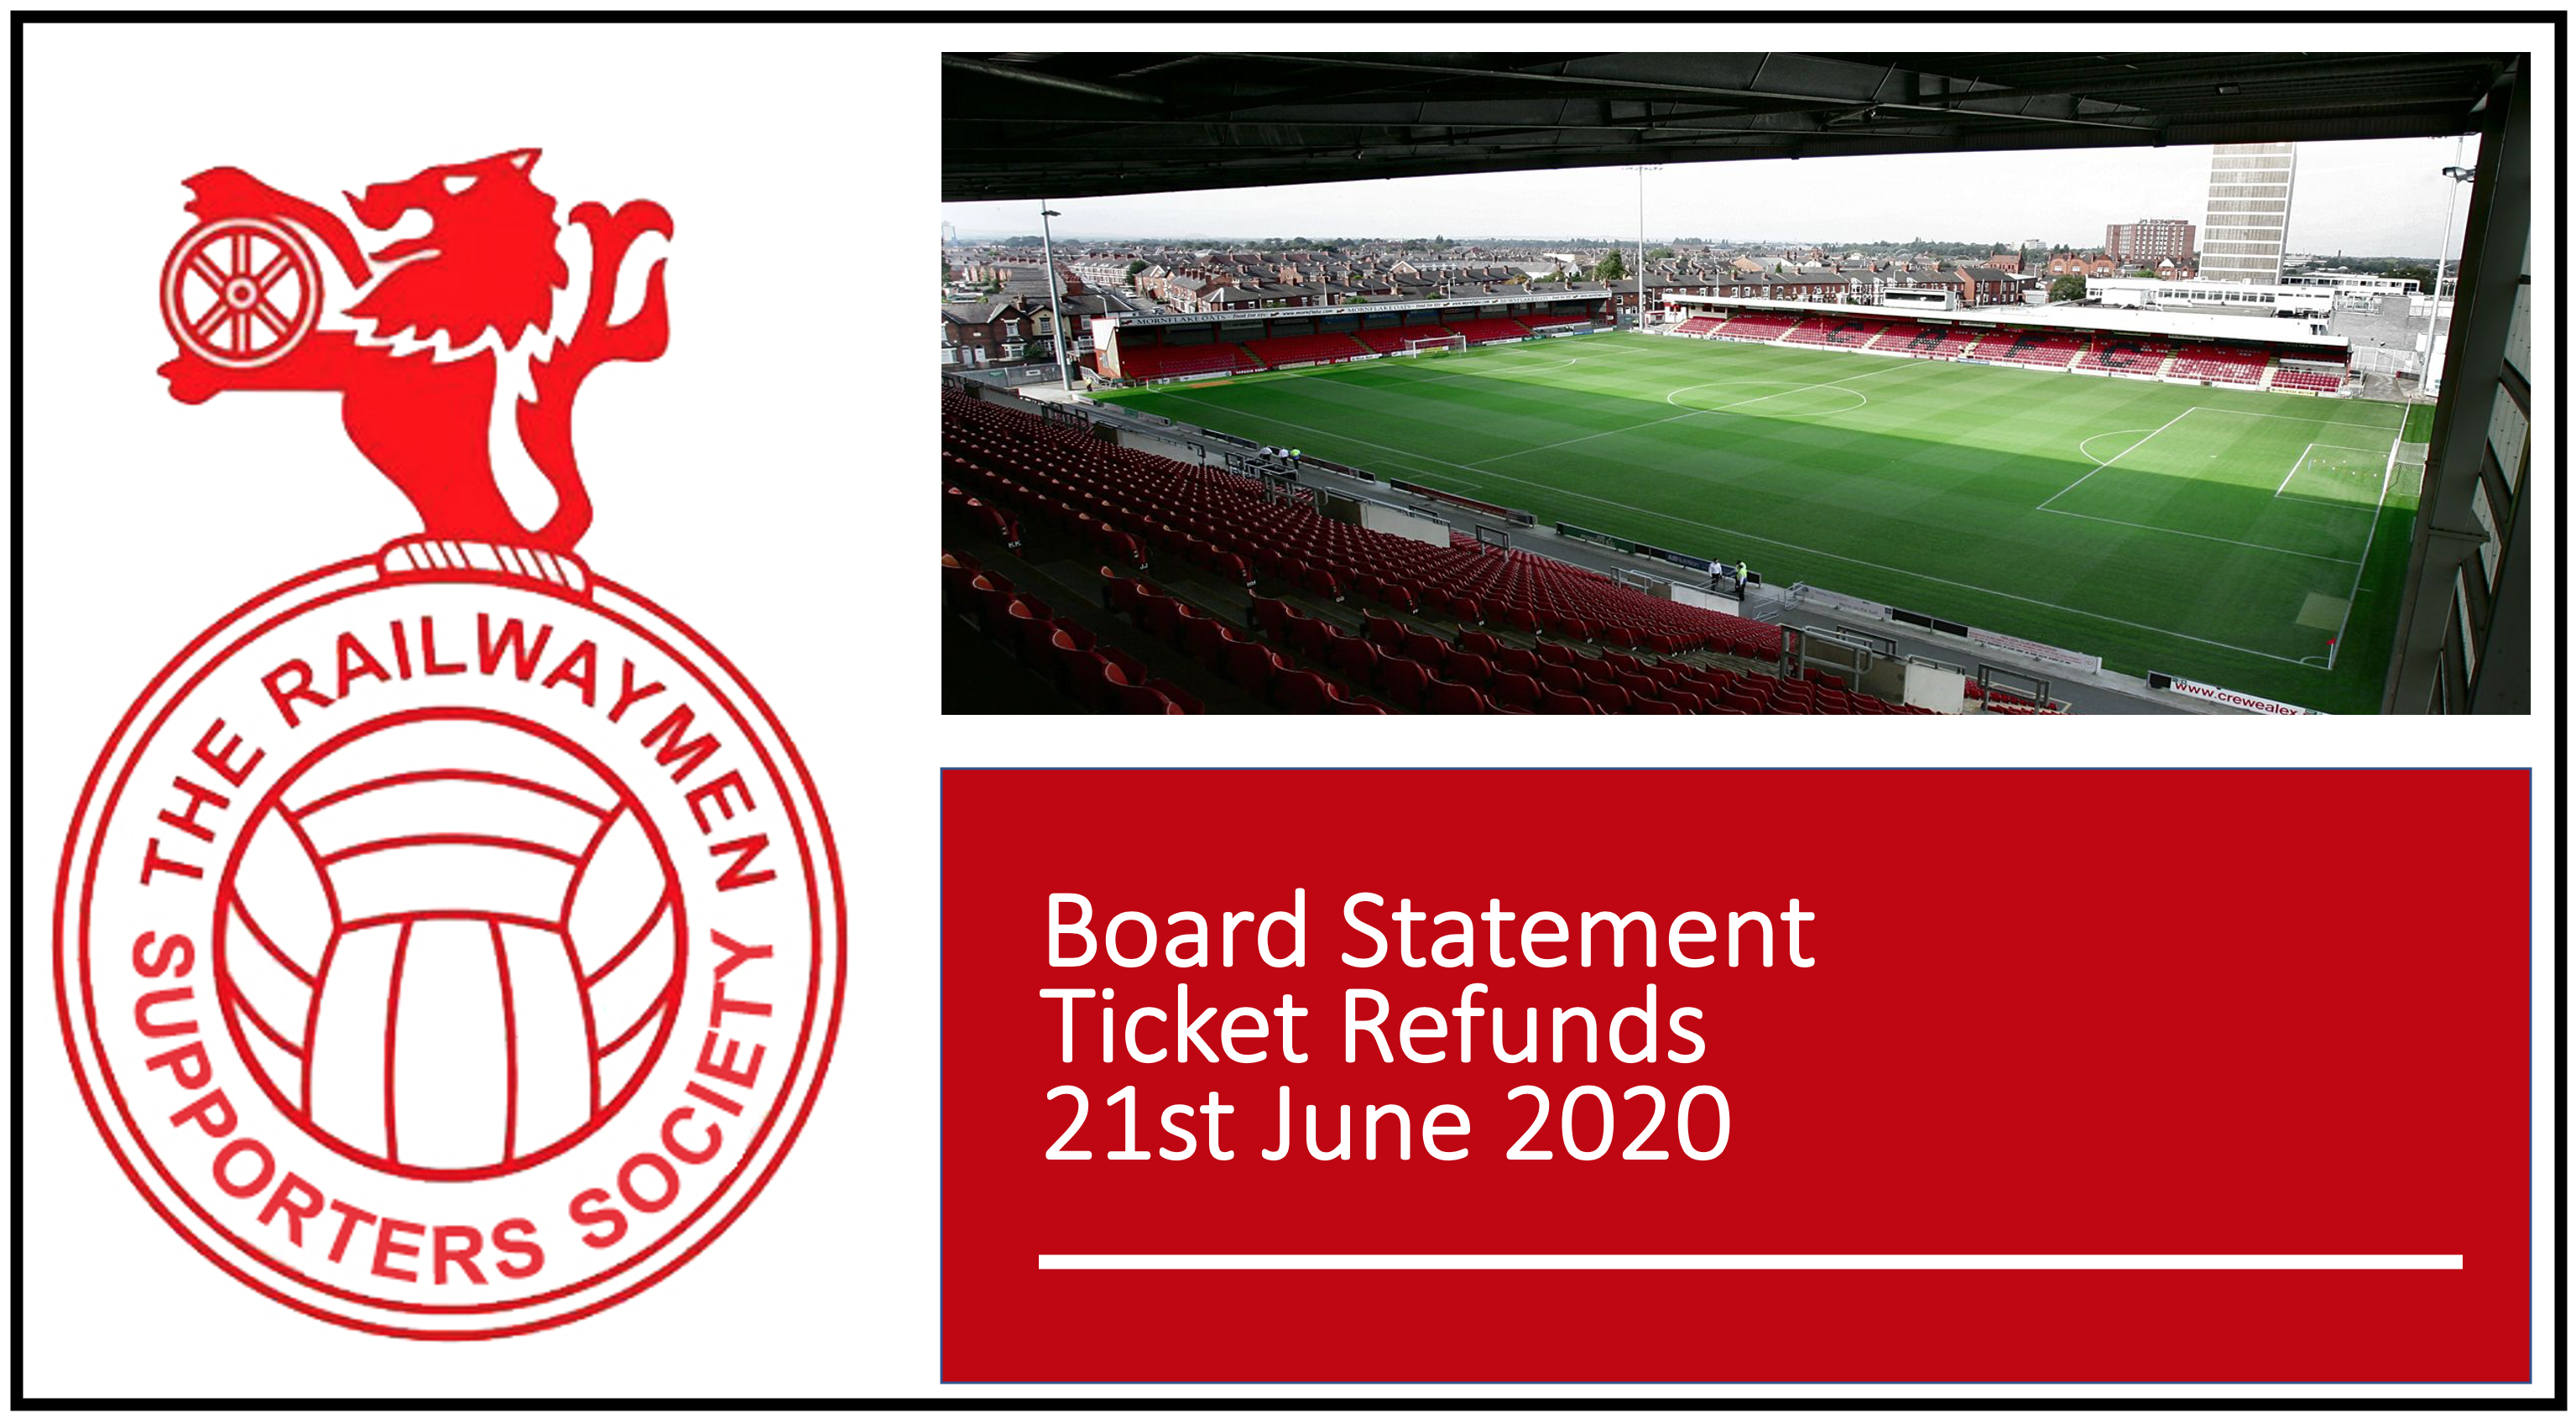 Railwaymen Statement on Ticket Refunds